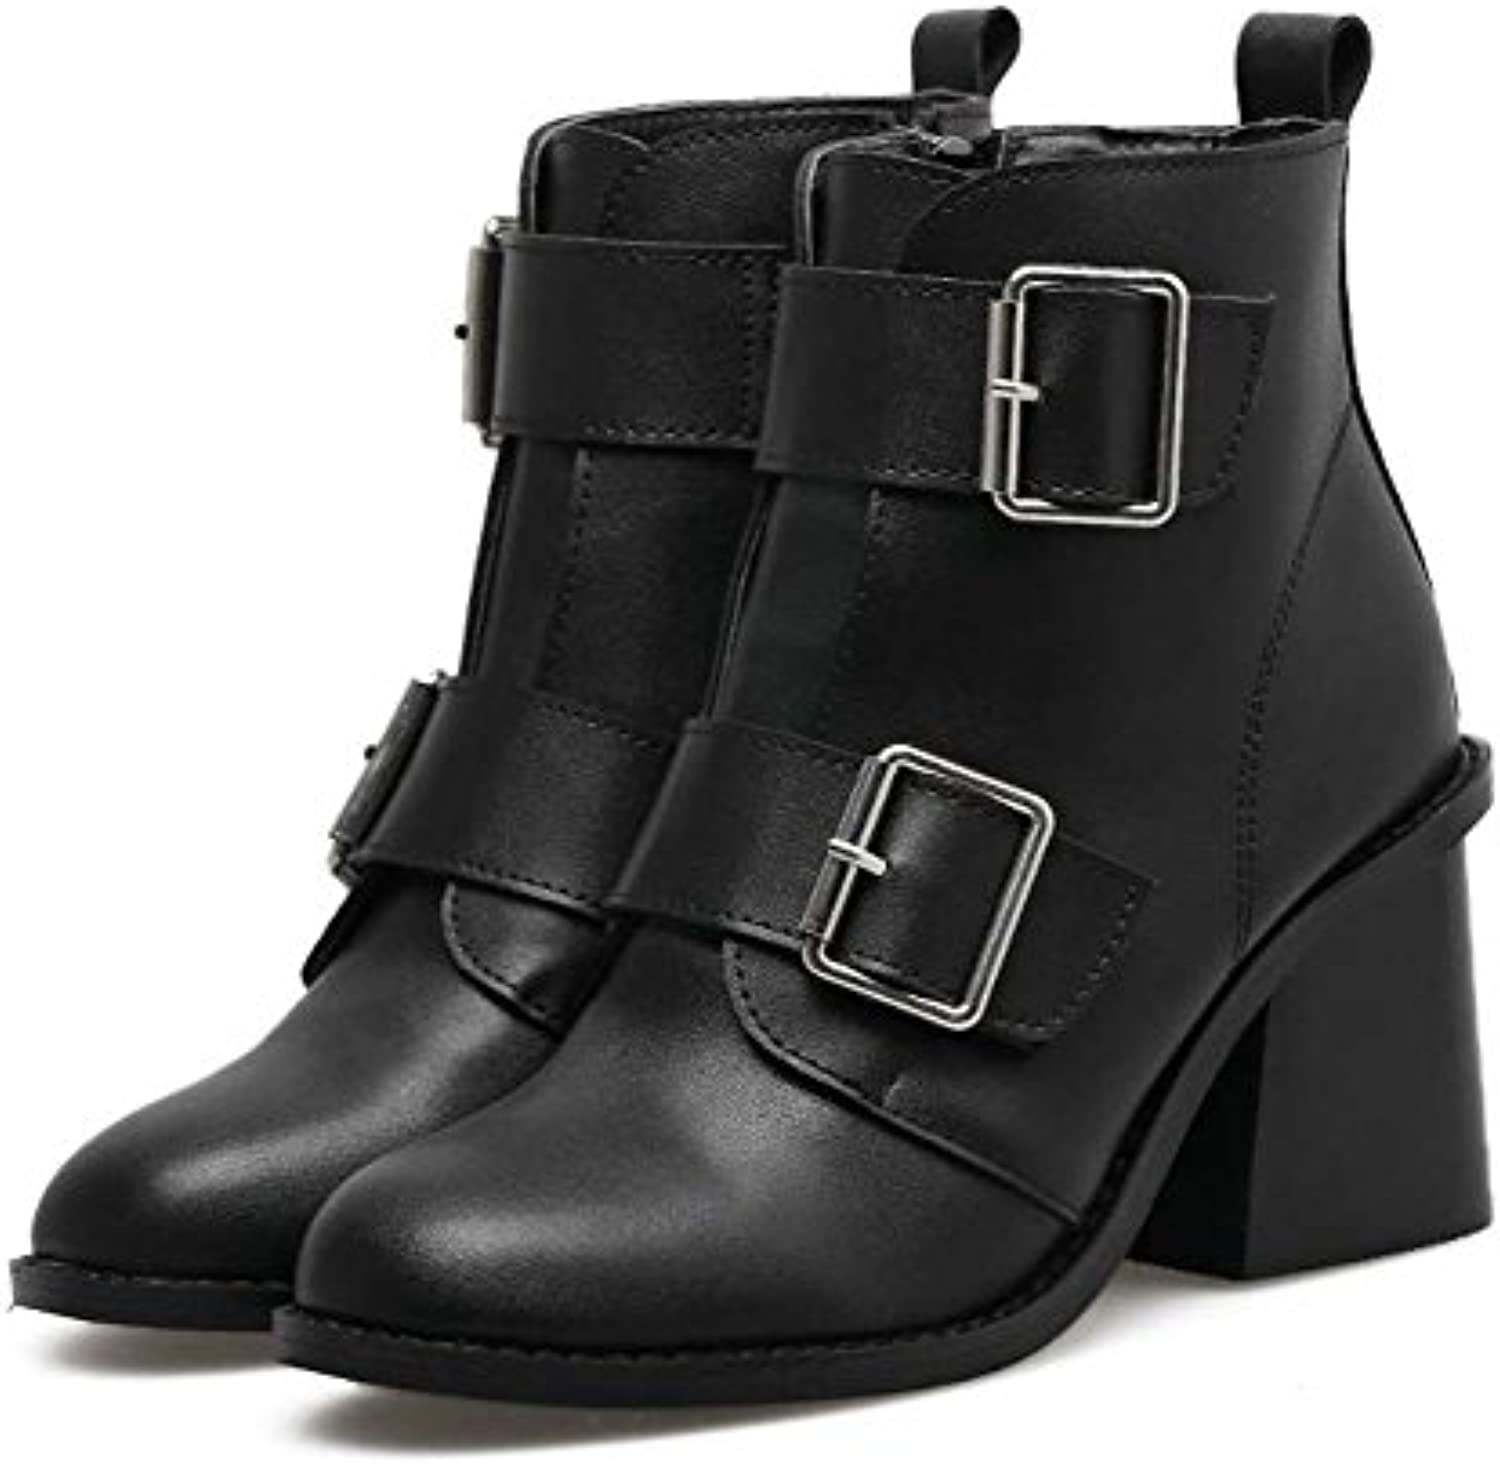 995121159dc 7.5CM Chunkly Heel Ankle Boot Court Shoes Women s Handsome Round Round  Round Toe Zipper Belt Buckle Knight Boots 2017 Autumn... B075JH7N9S Parent  452492